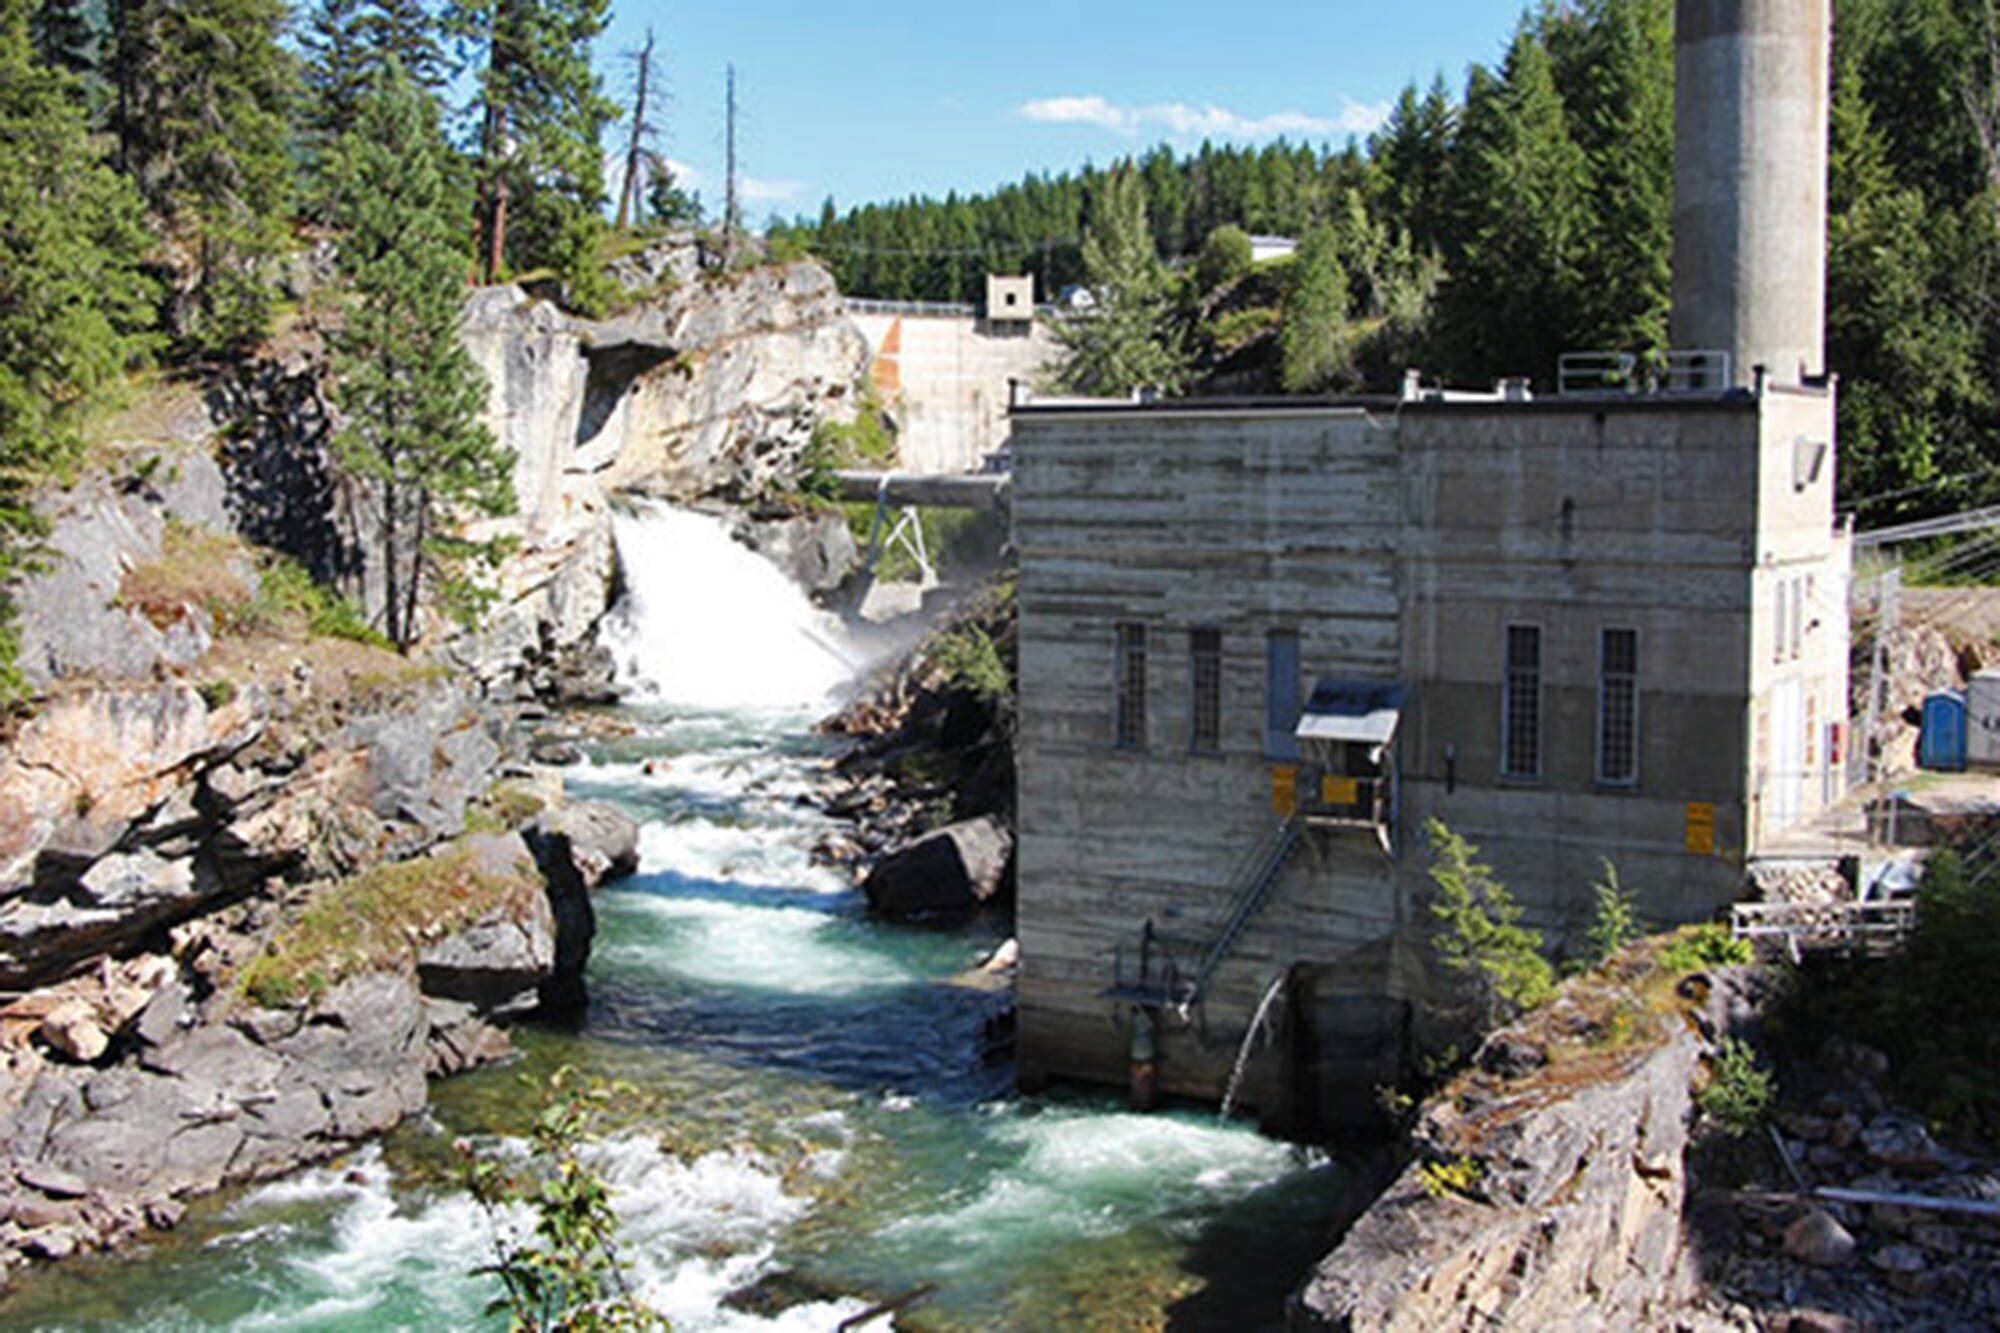 BC Hydro plans to remove the Wilsey Dam and Shuswap Falls Powerhouse along the Shuswap River as part of a restoration project to help salmon access to historical spawning habitat. (BC Hydro photo)